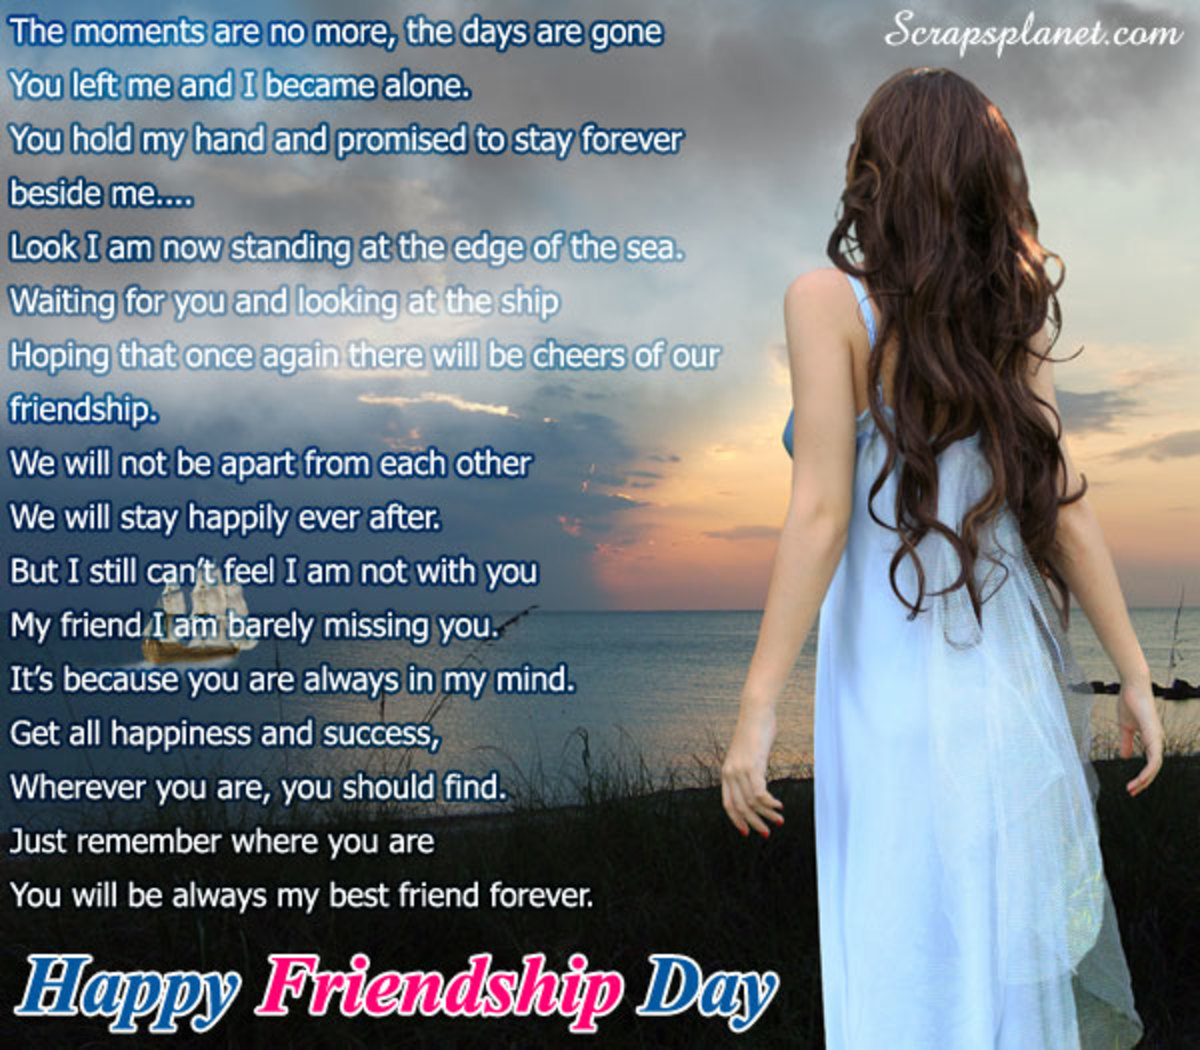 One Way Love Quotes In Malayalam: Some Friendship Messages I Want To Dedicate To All My